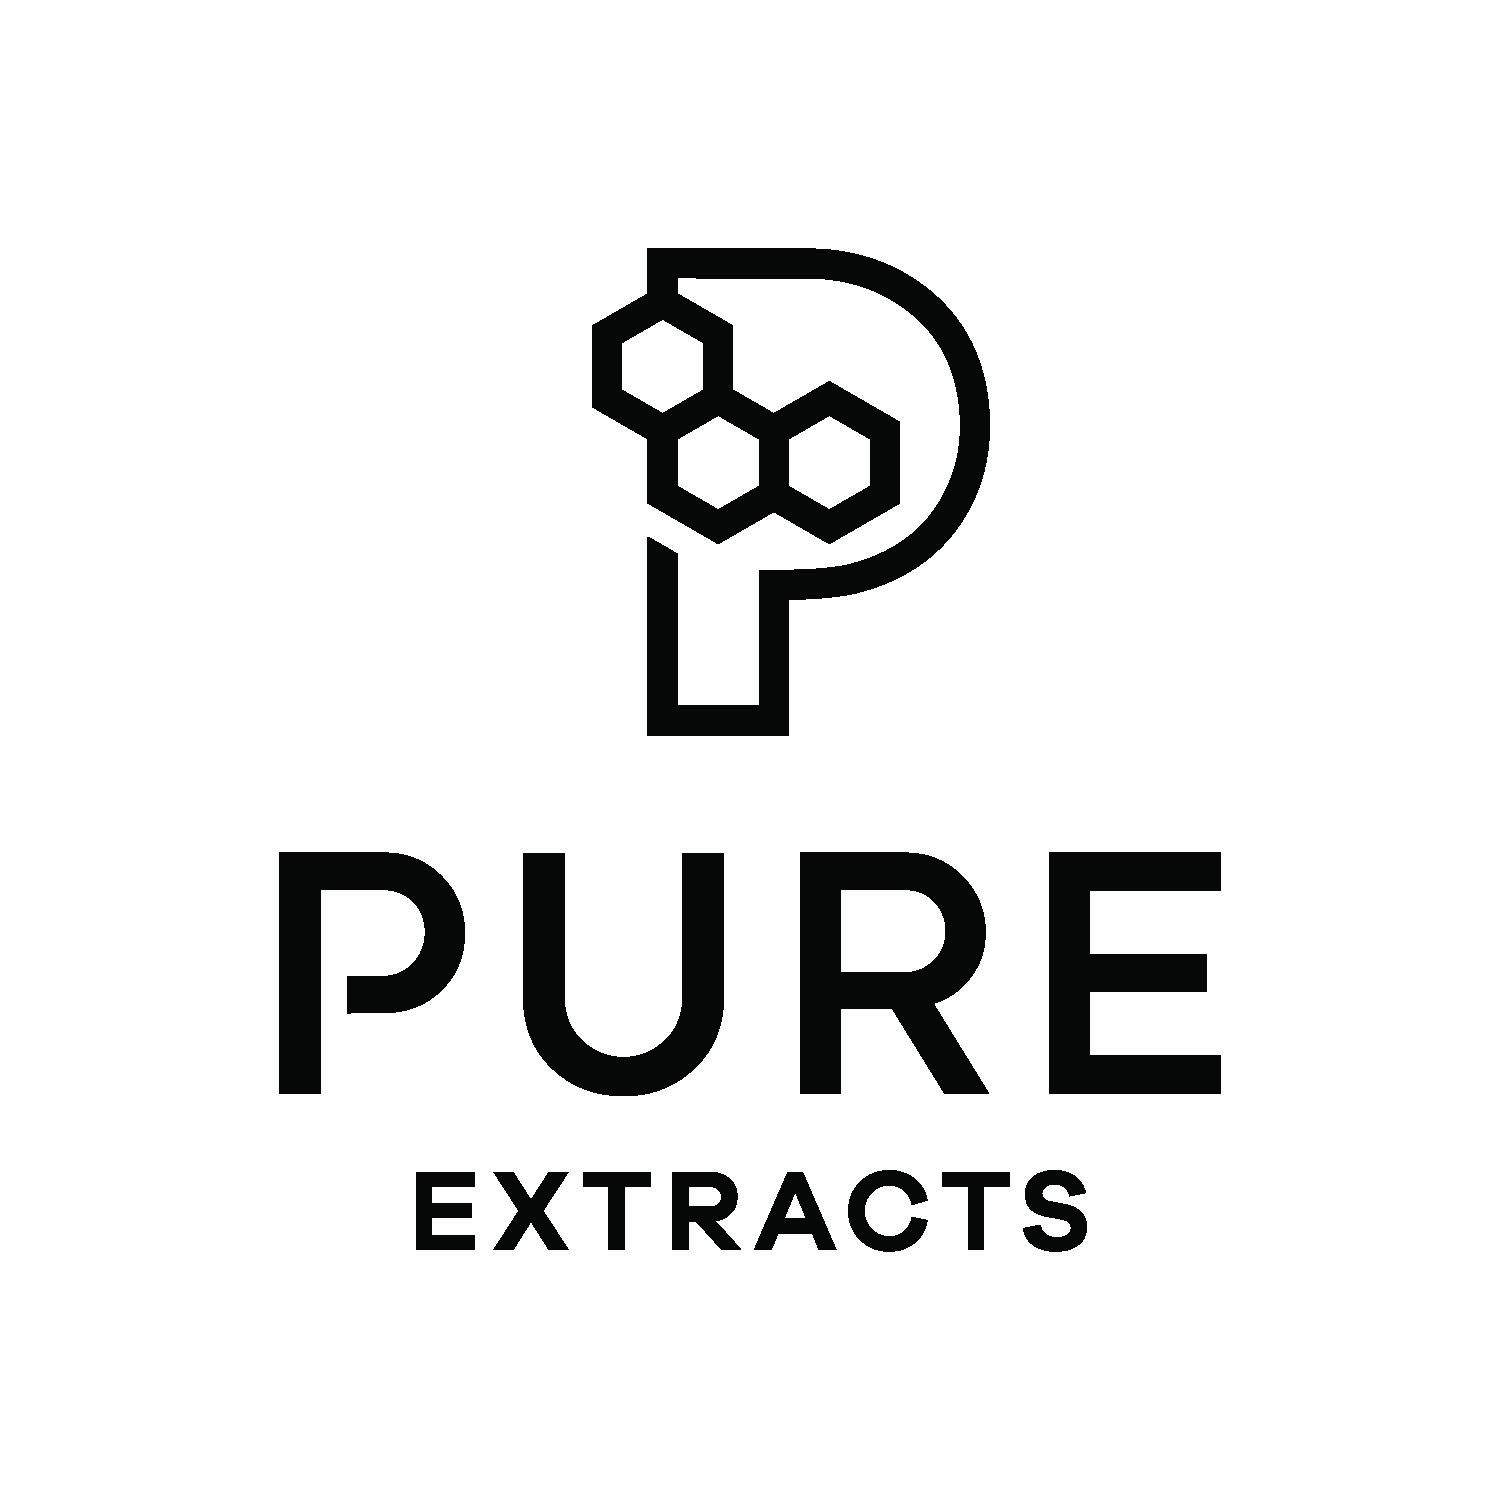 REPEAT -- Pure Extracts Preparing Application for Dealers Licence